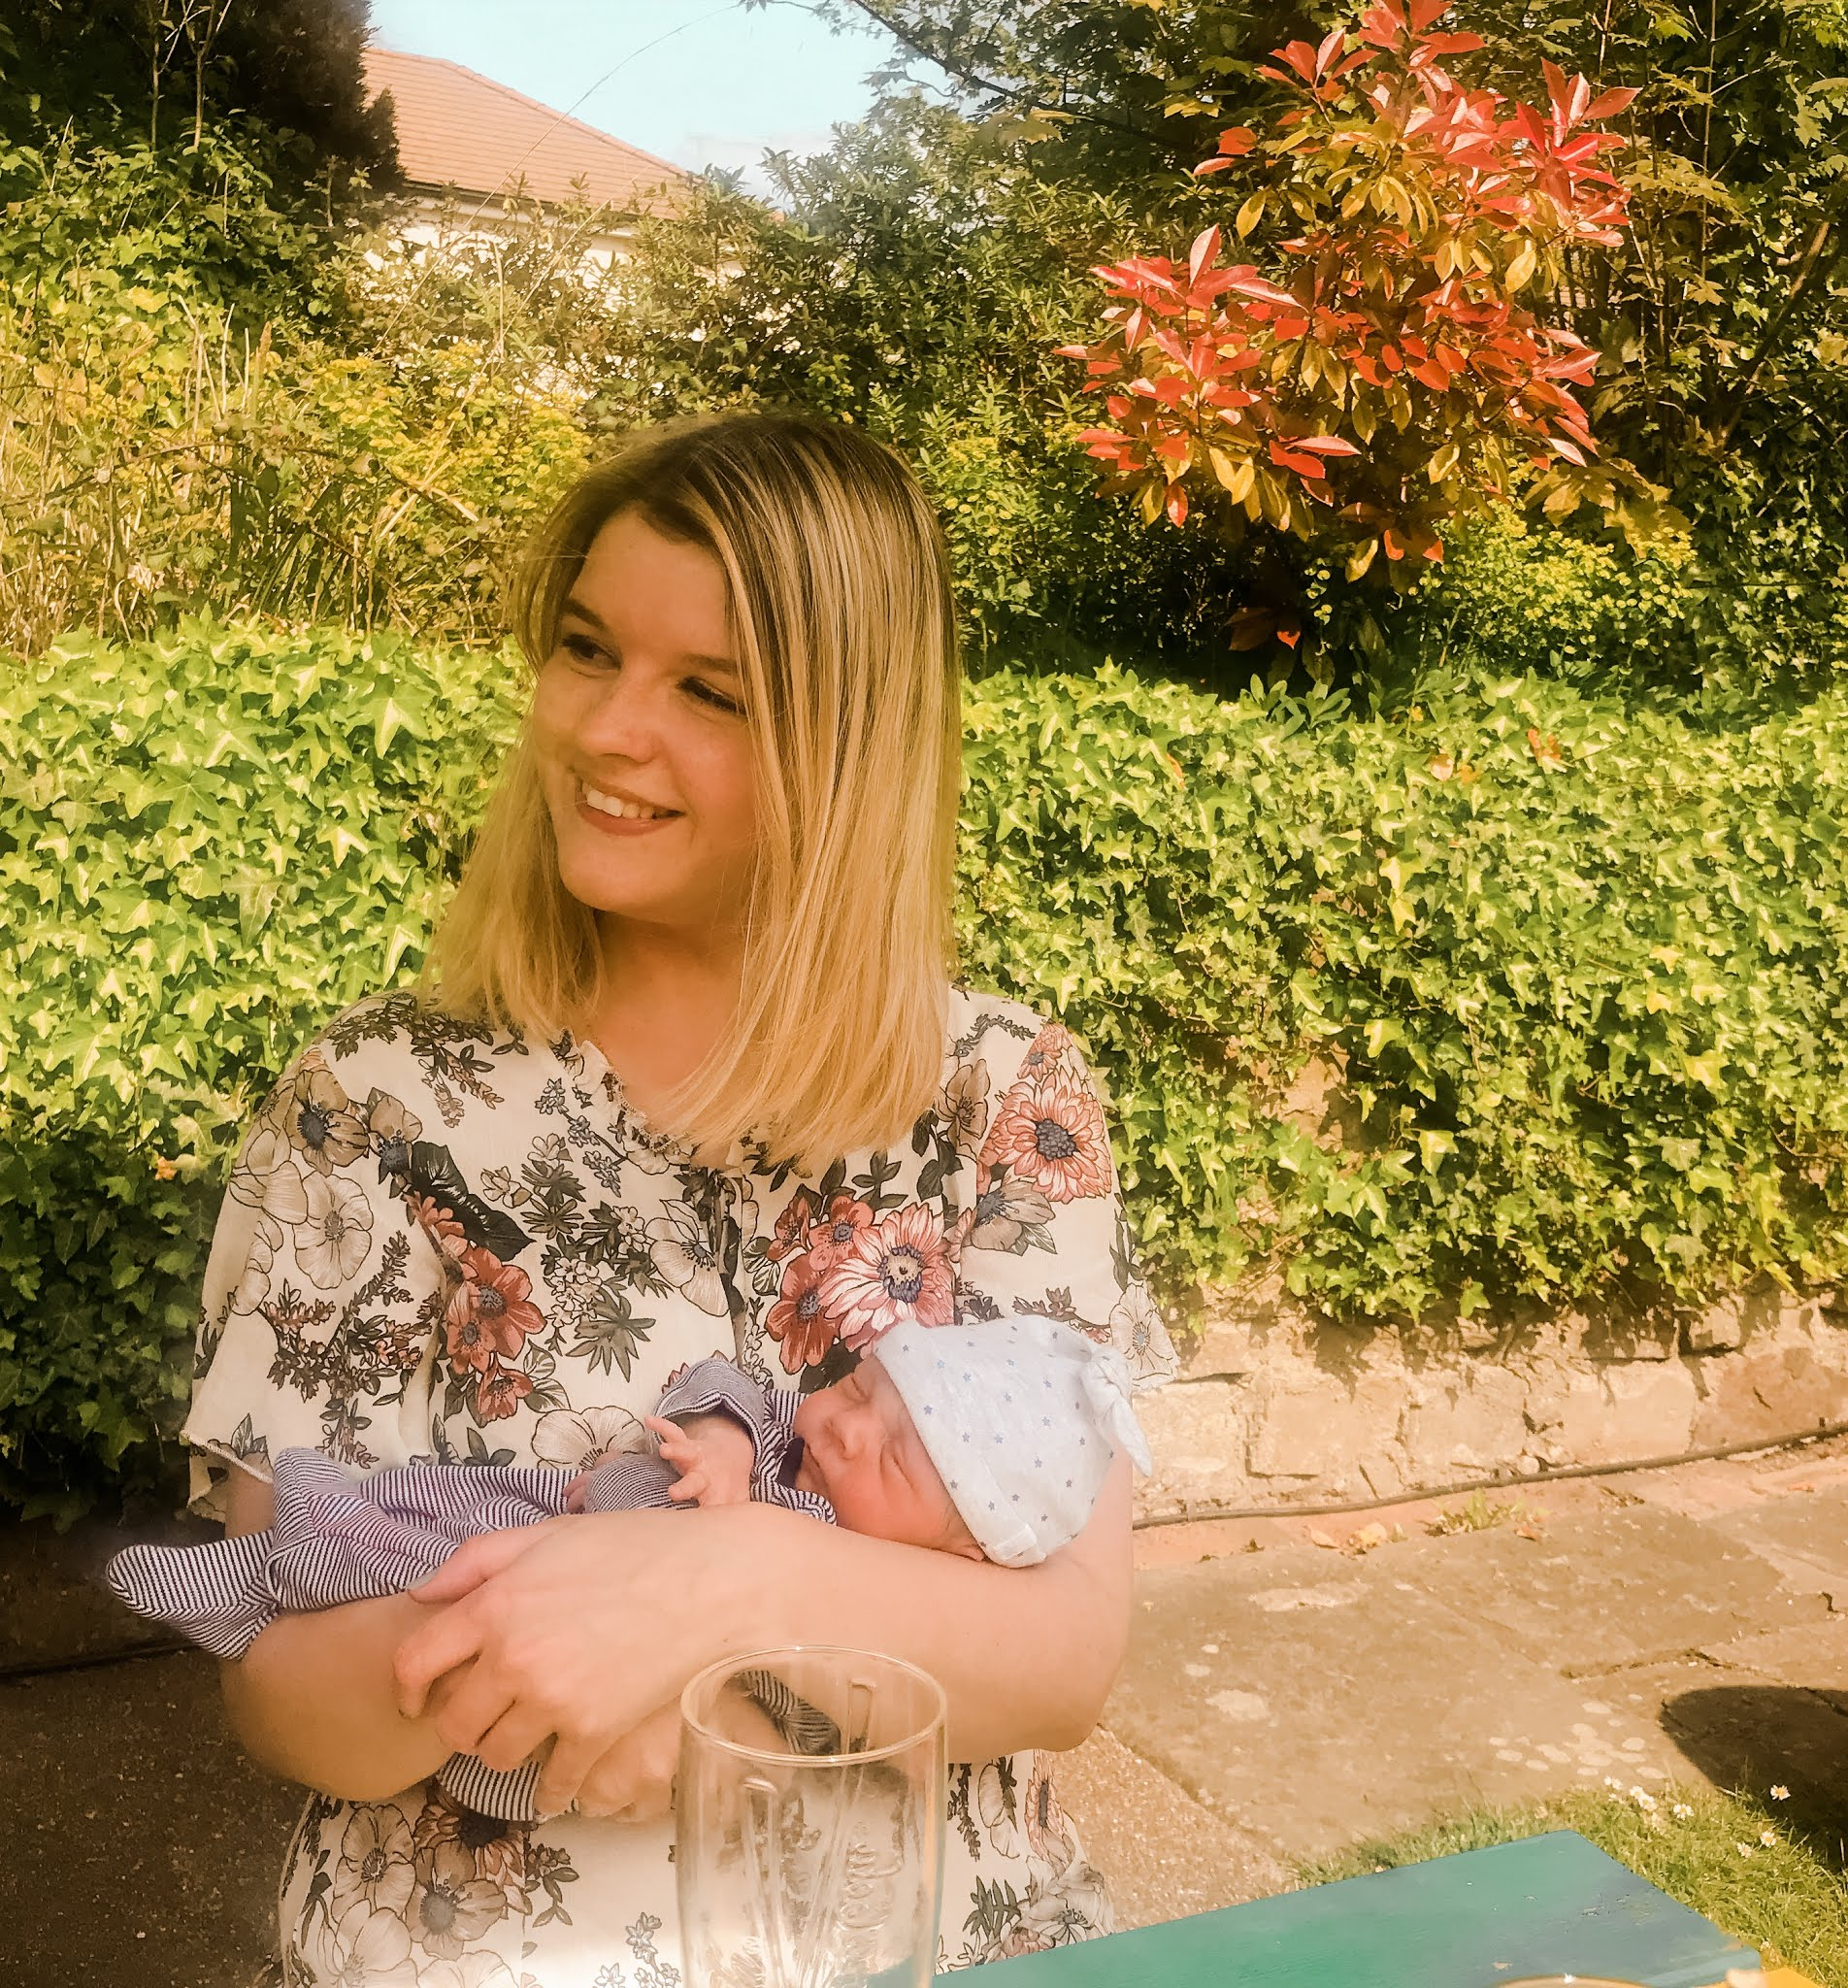 Fashion blogger Chloe Harriets smiling and holding baby relative